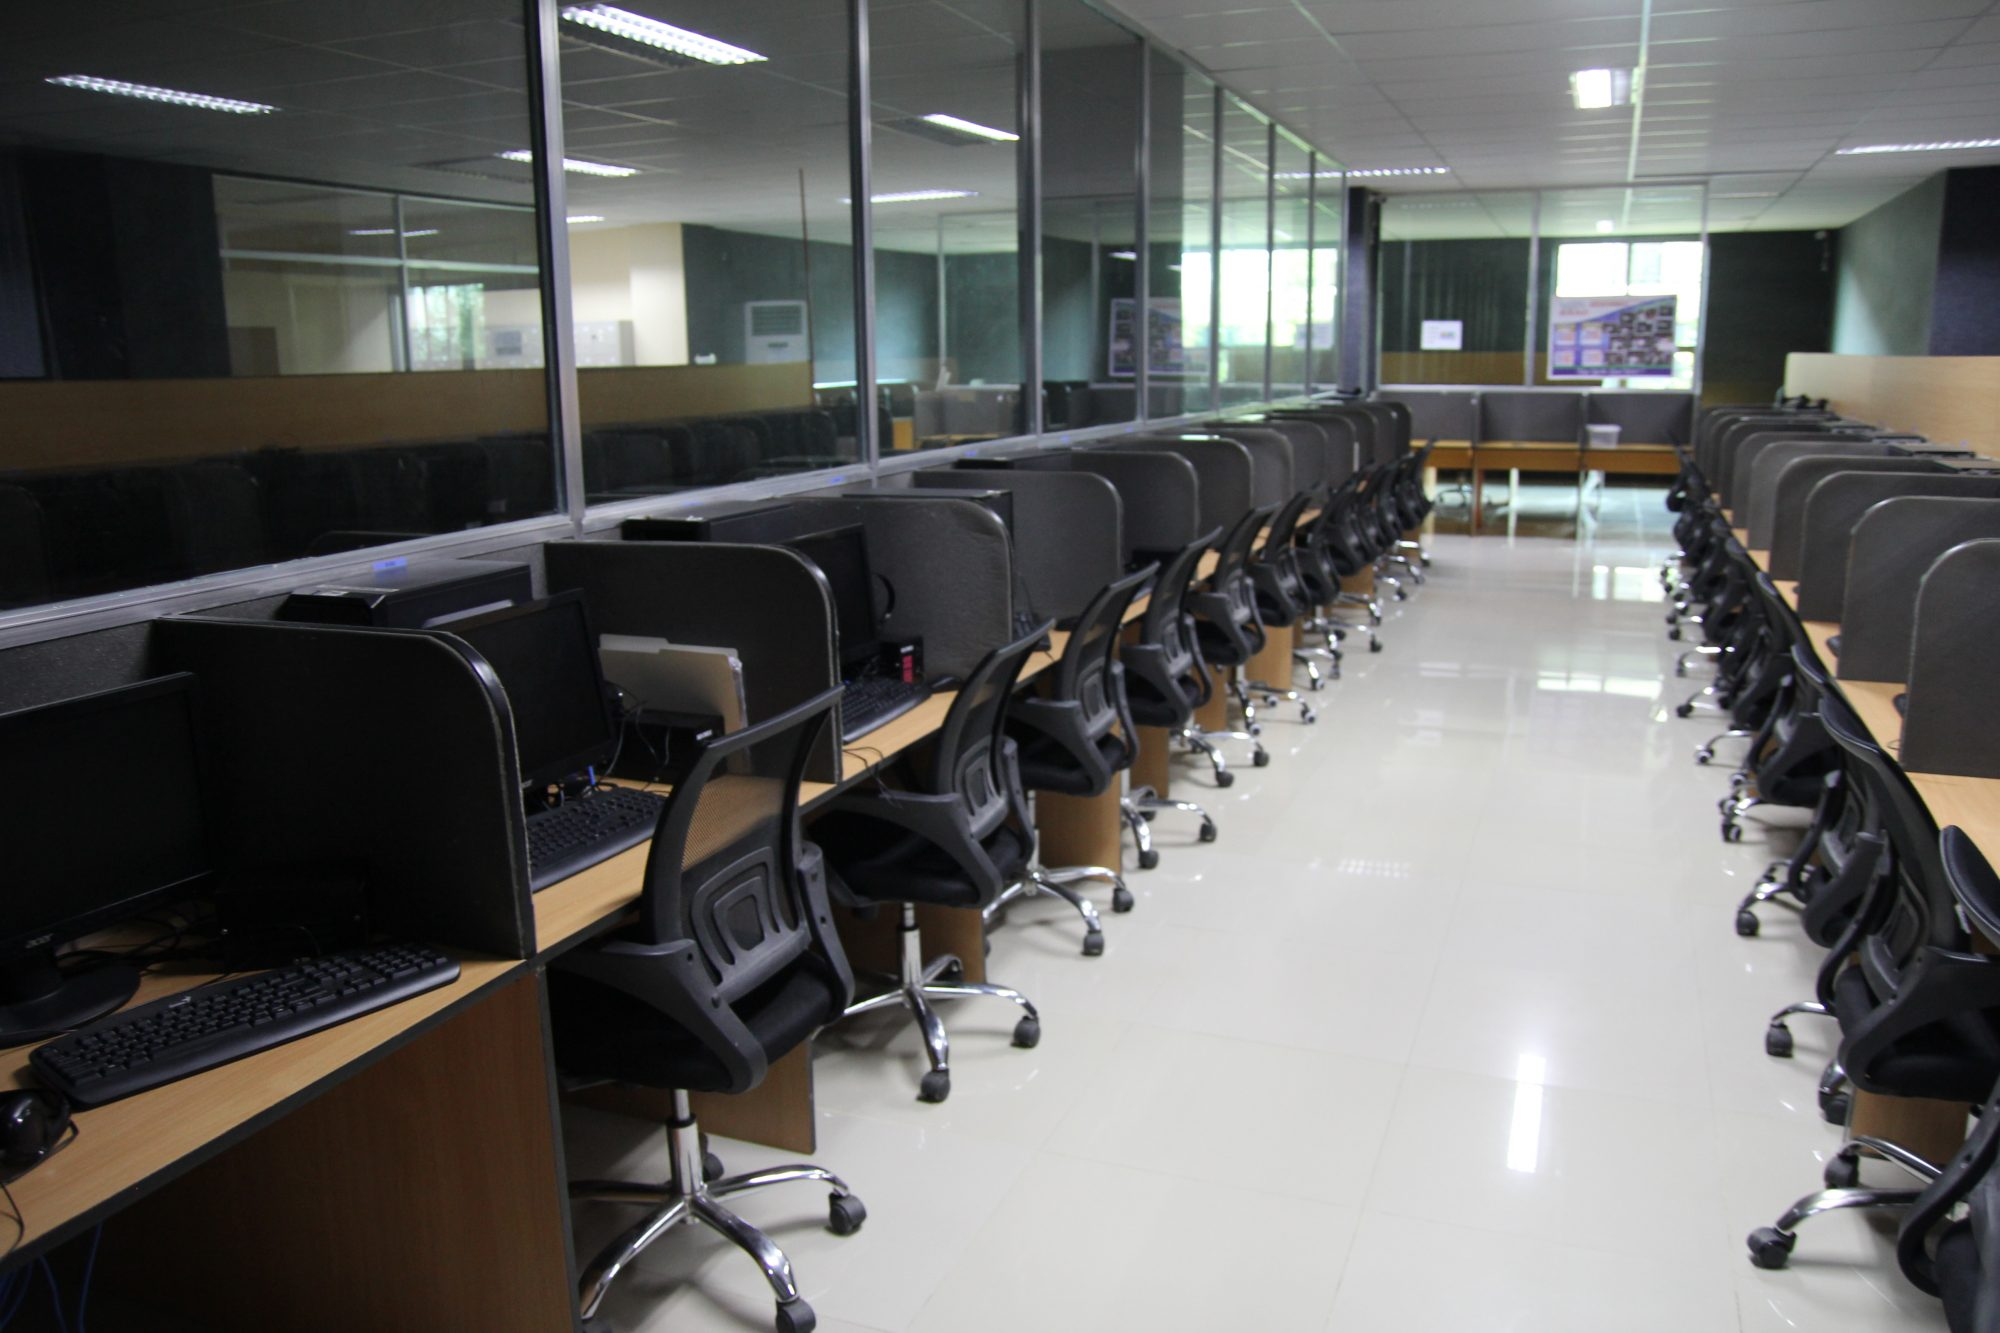 Lease a Call Center Office With BPOSeats.com Today!